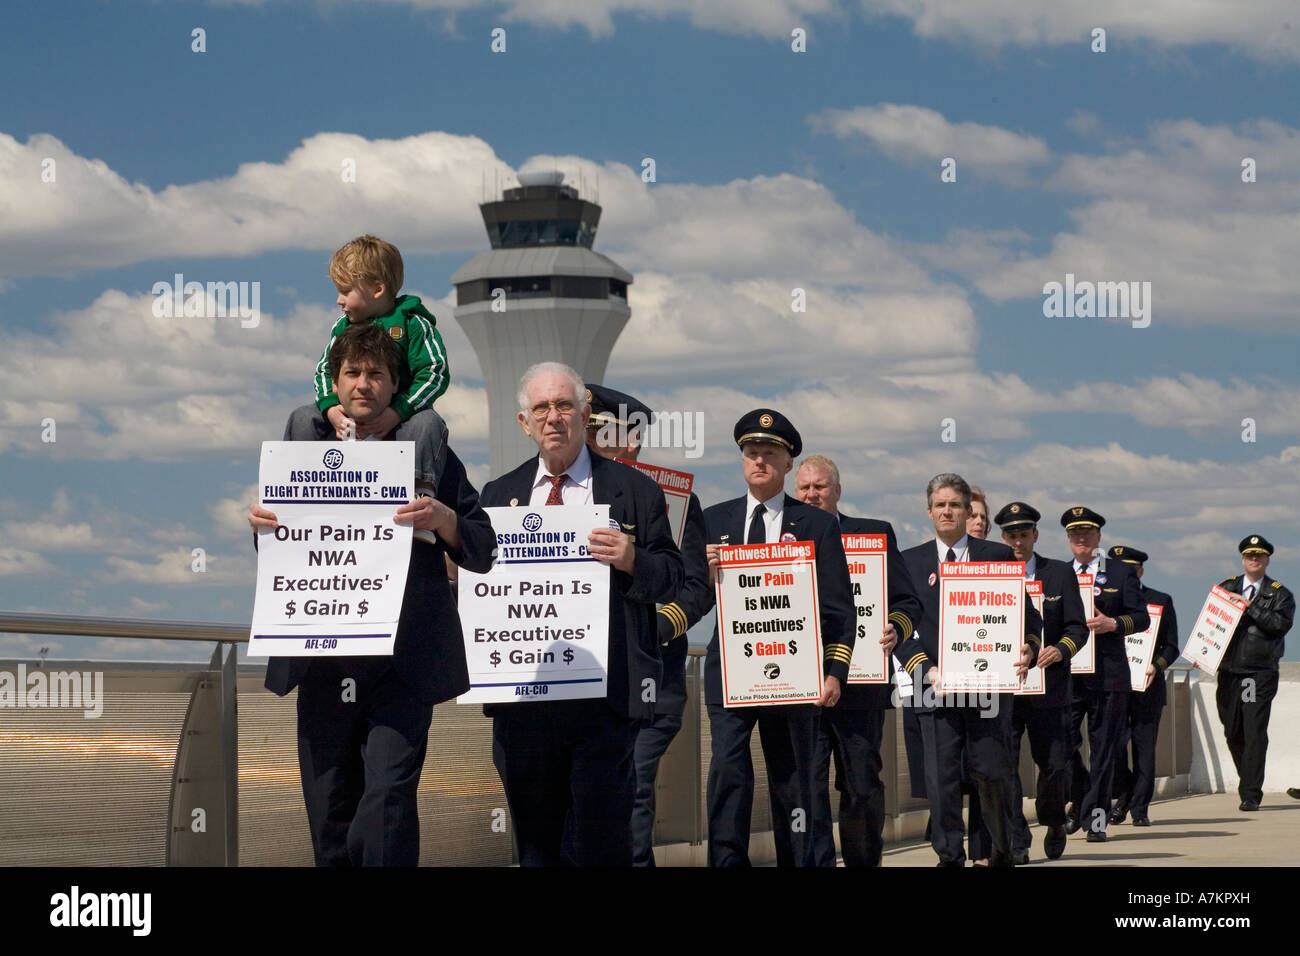 Airline Workers Protest Executive Bonuses - Stock Image